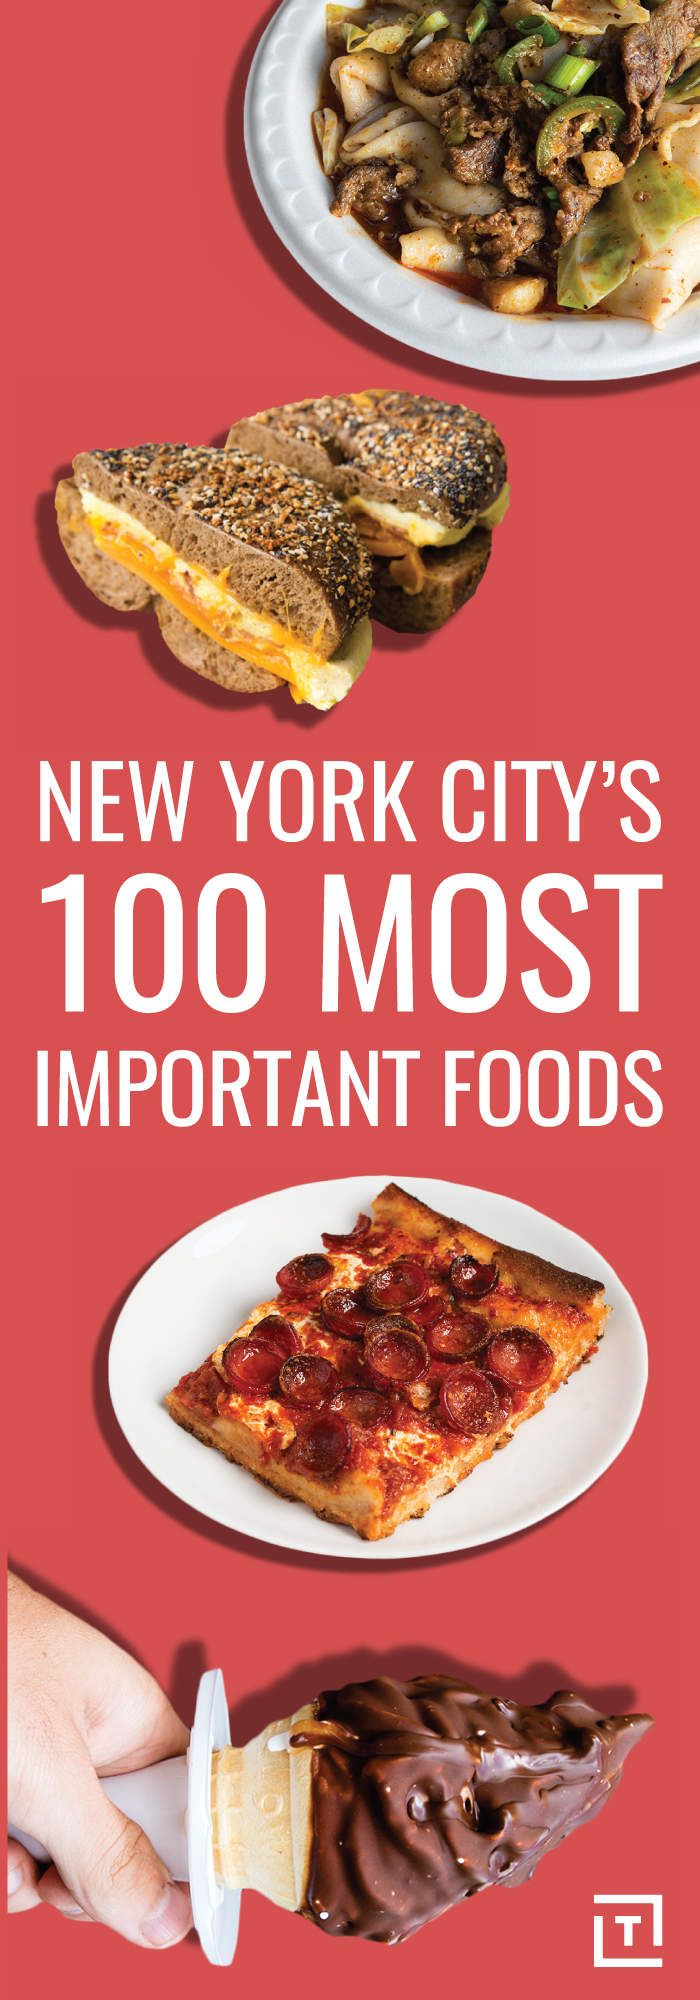 New York City's 100 Most Important Foods